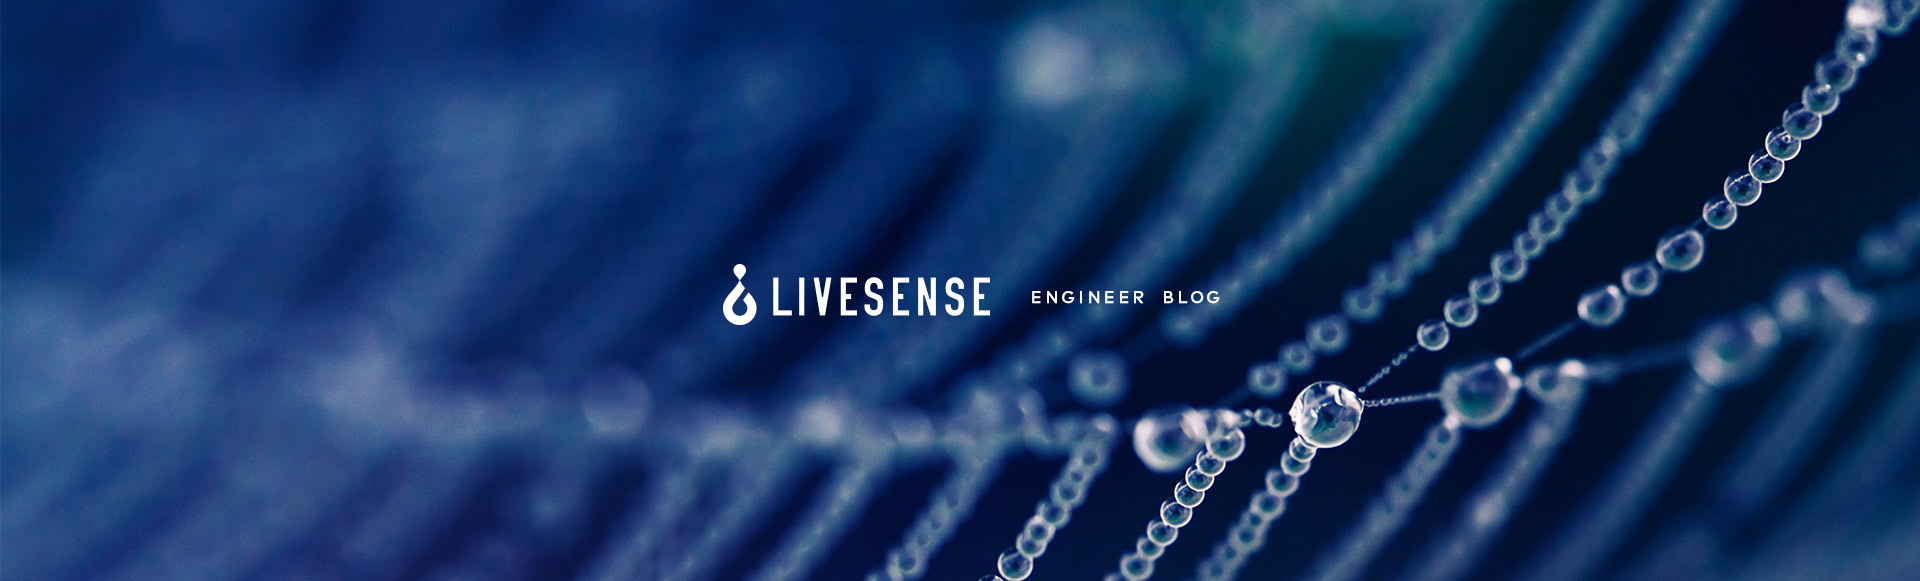 LIVESENSE ENGINEERING BLOG